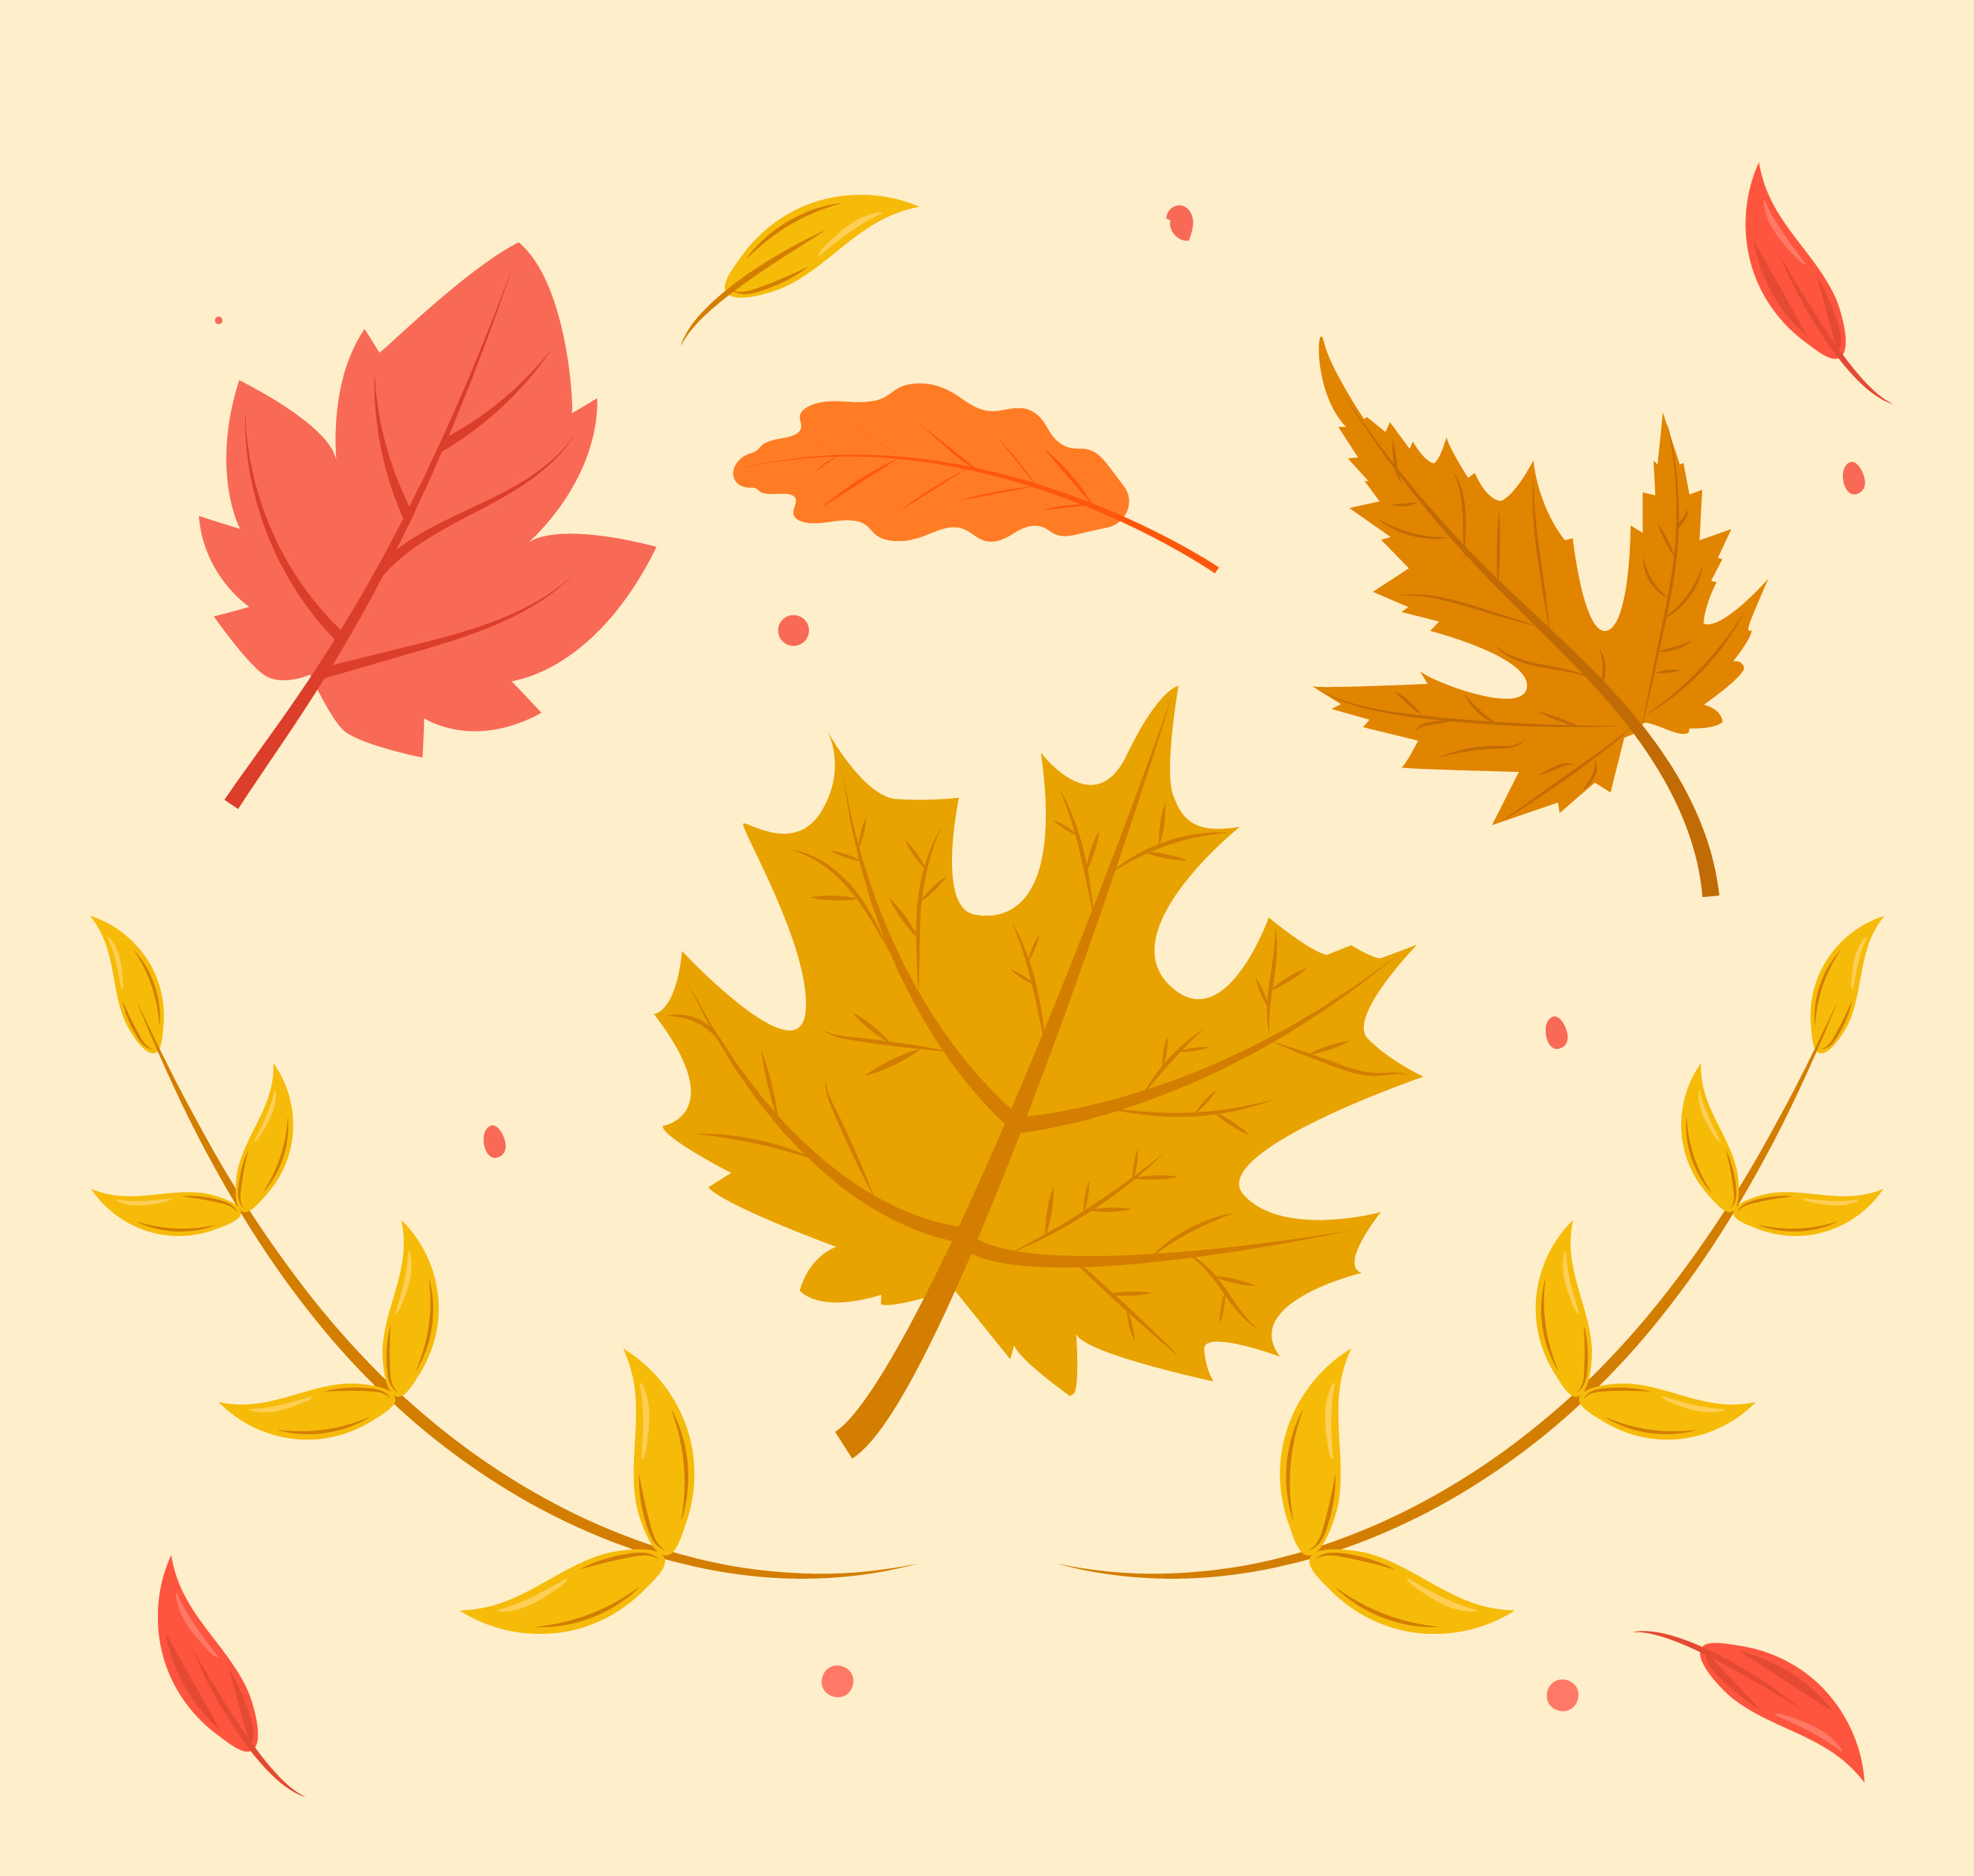 Autumn Leaves Vector Download